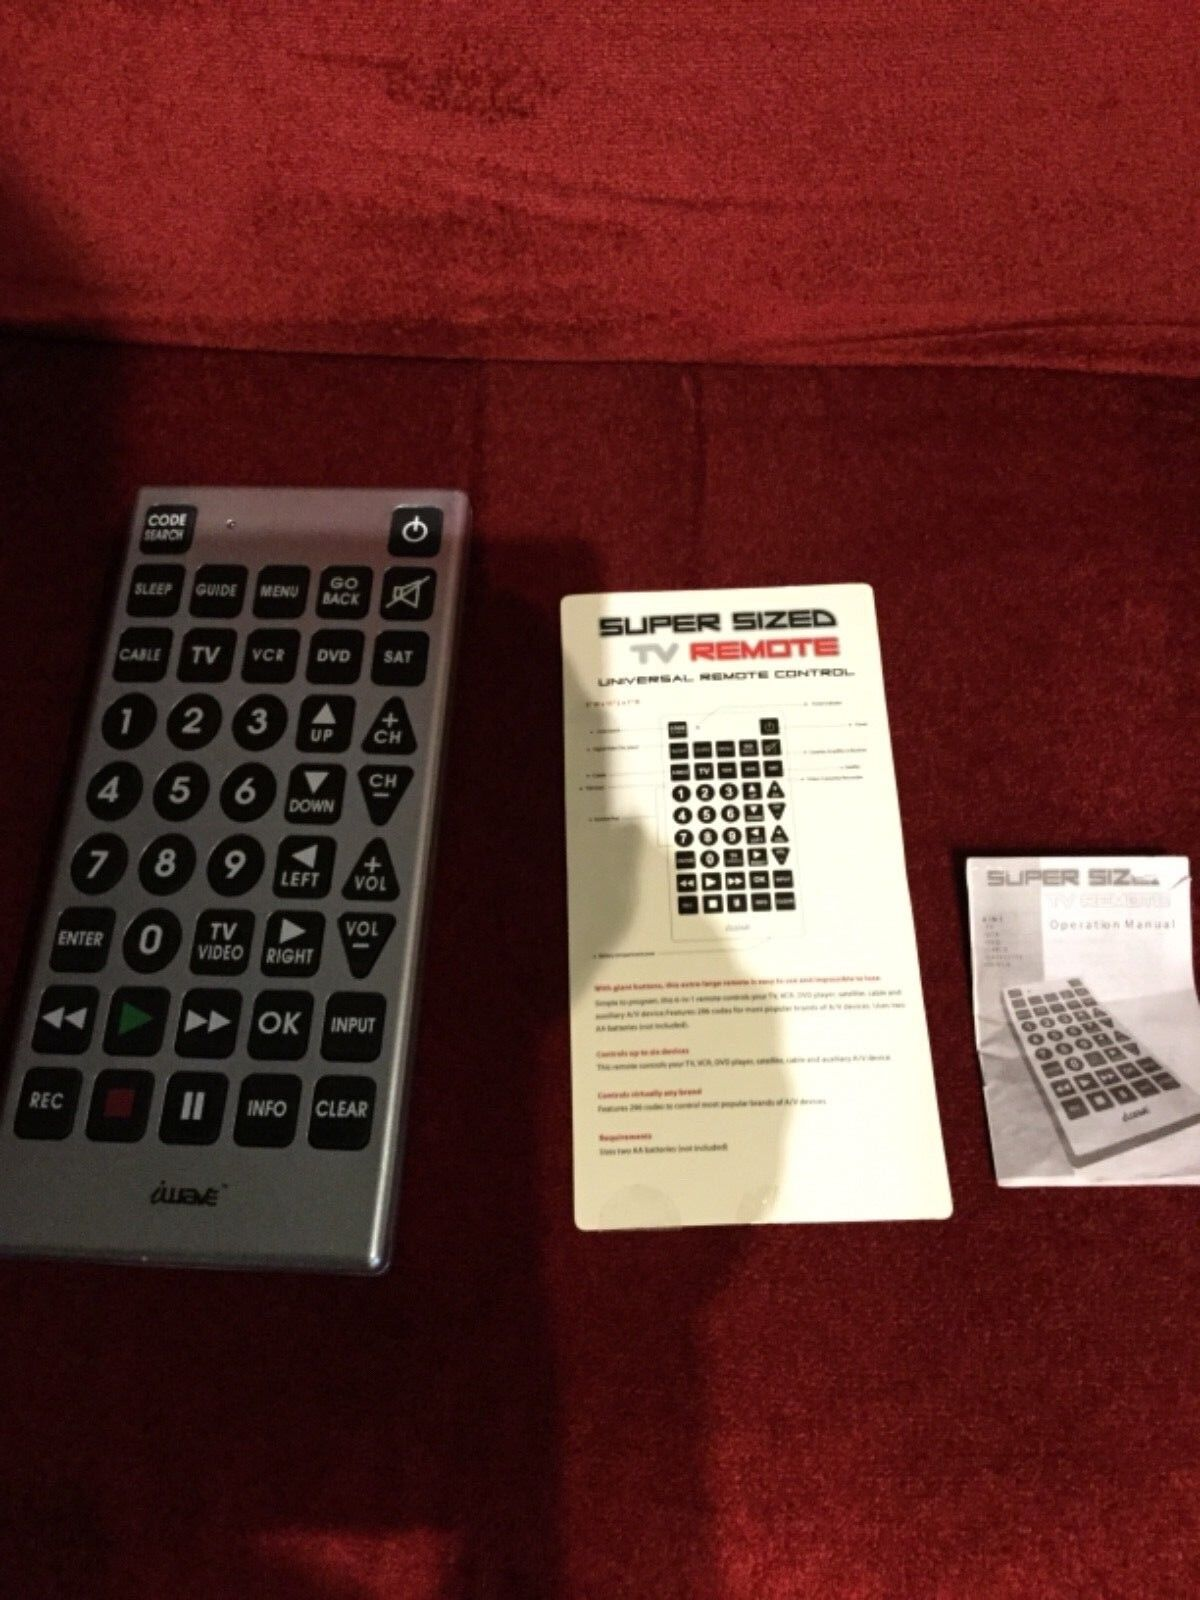 Iwave supersize TV remote with instructions never used no box model RC 5000